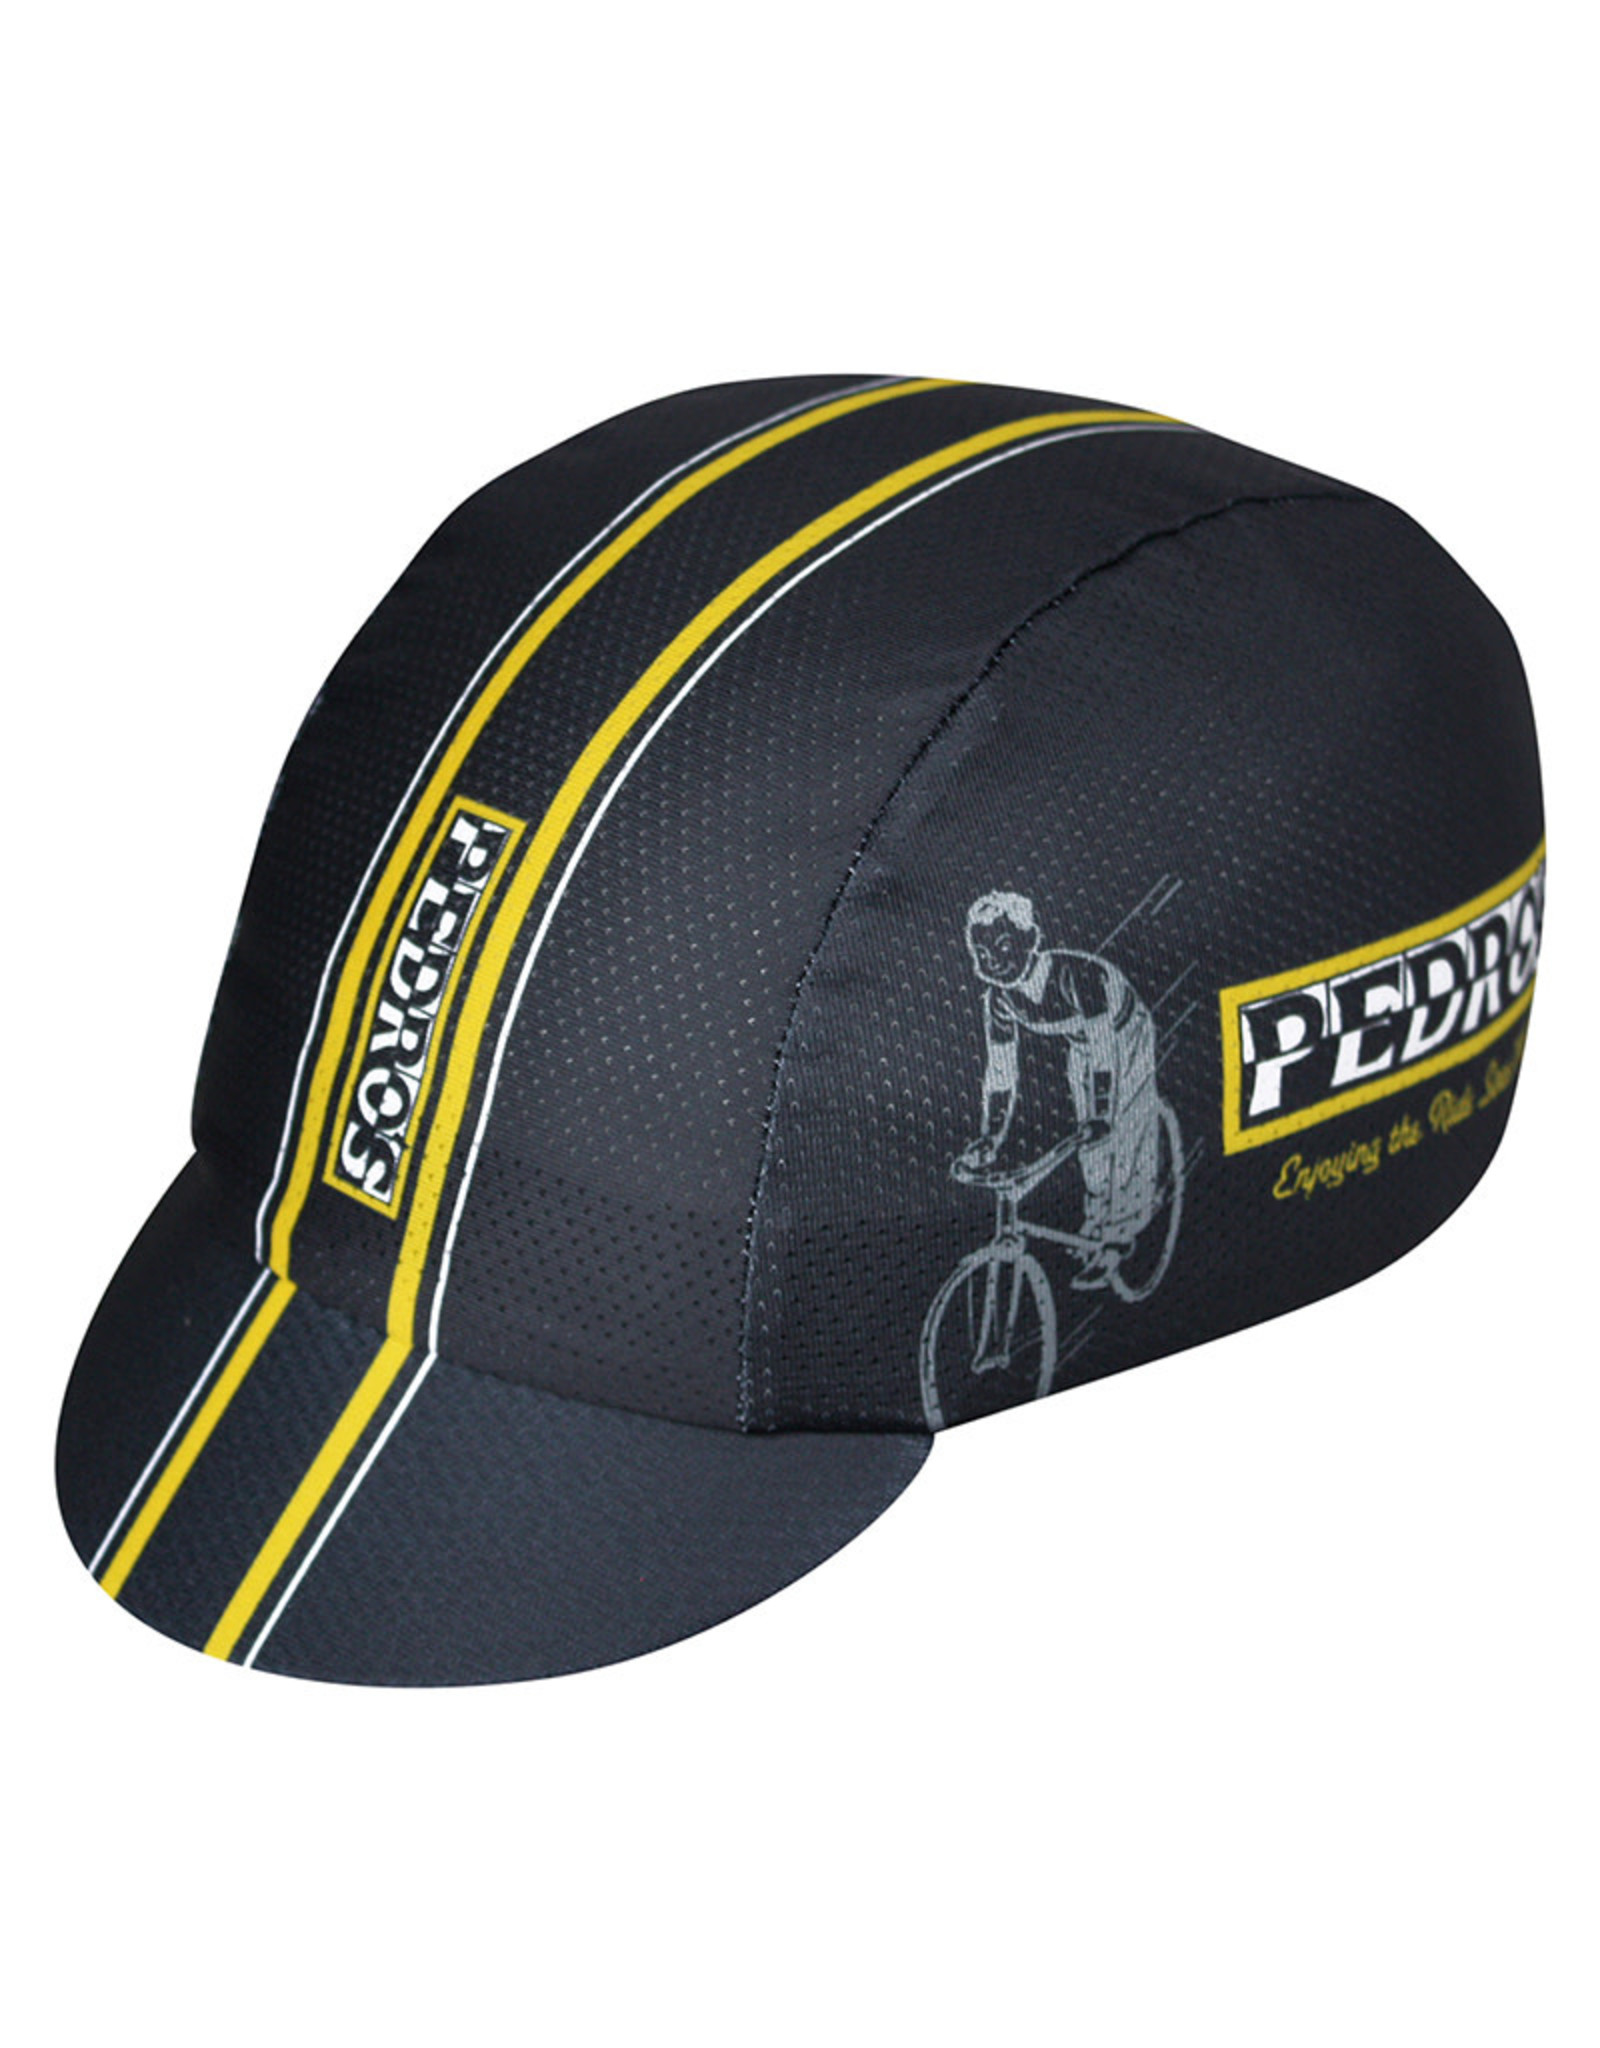 PACE CLOTHING HAT PACE COOLMAX PEDROS RIDE